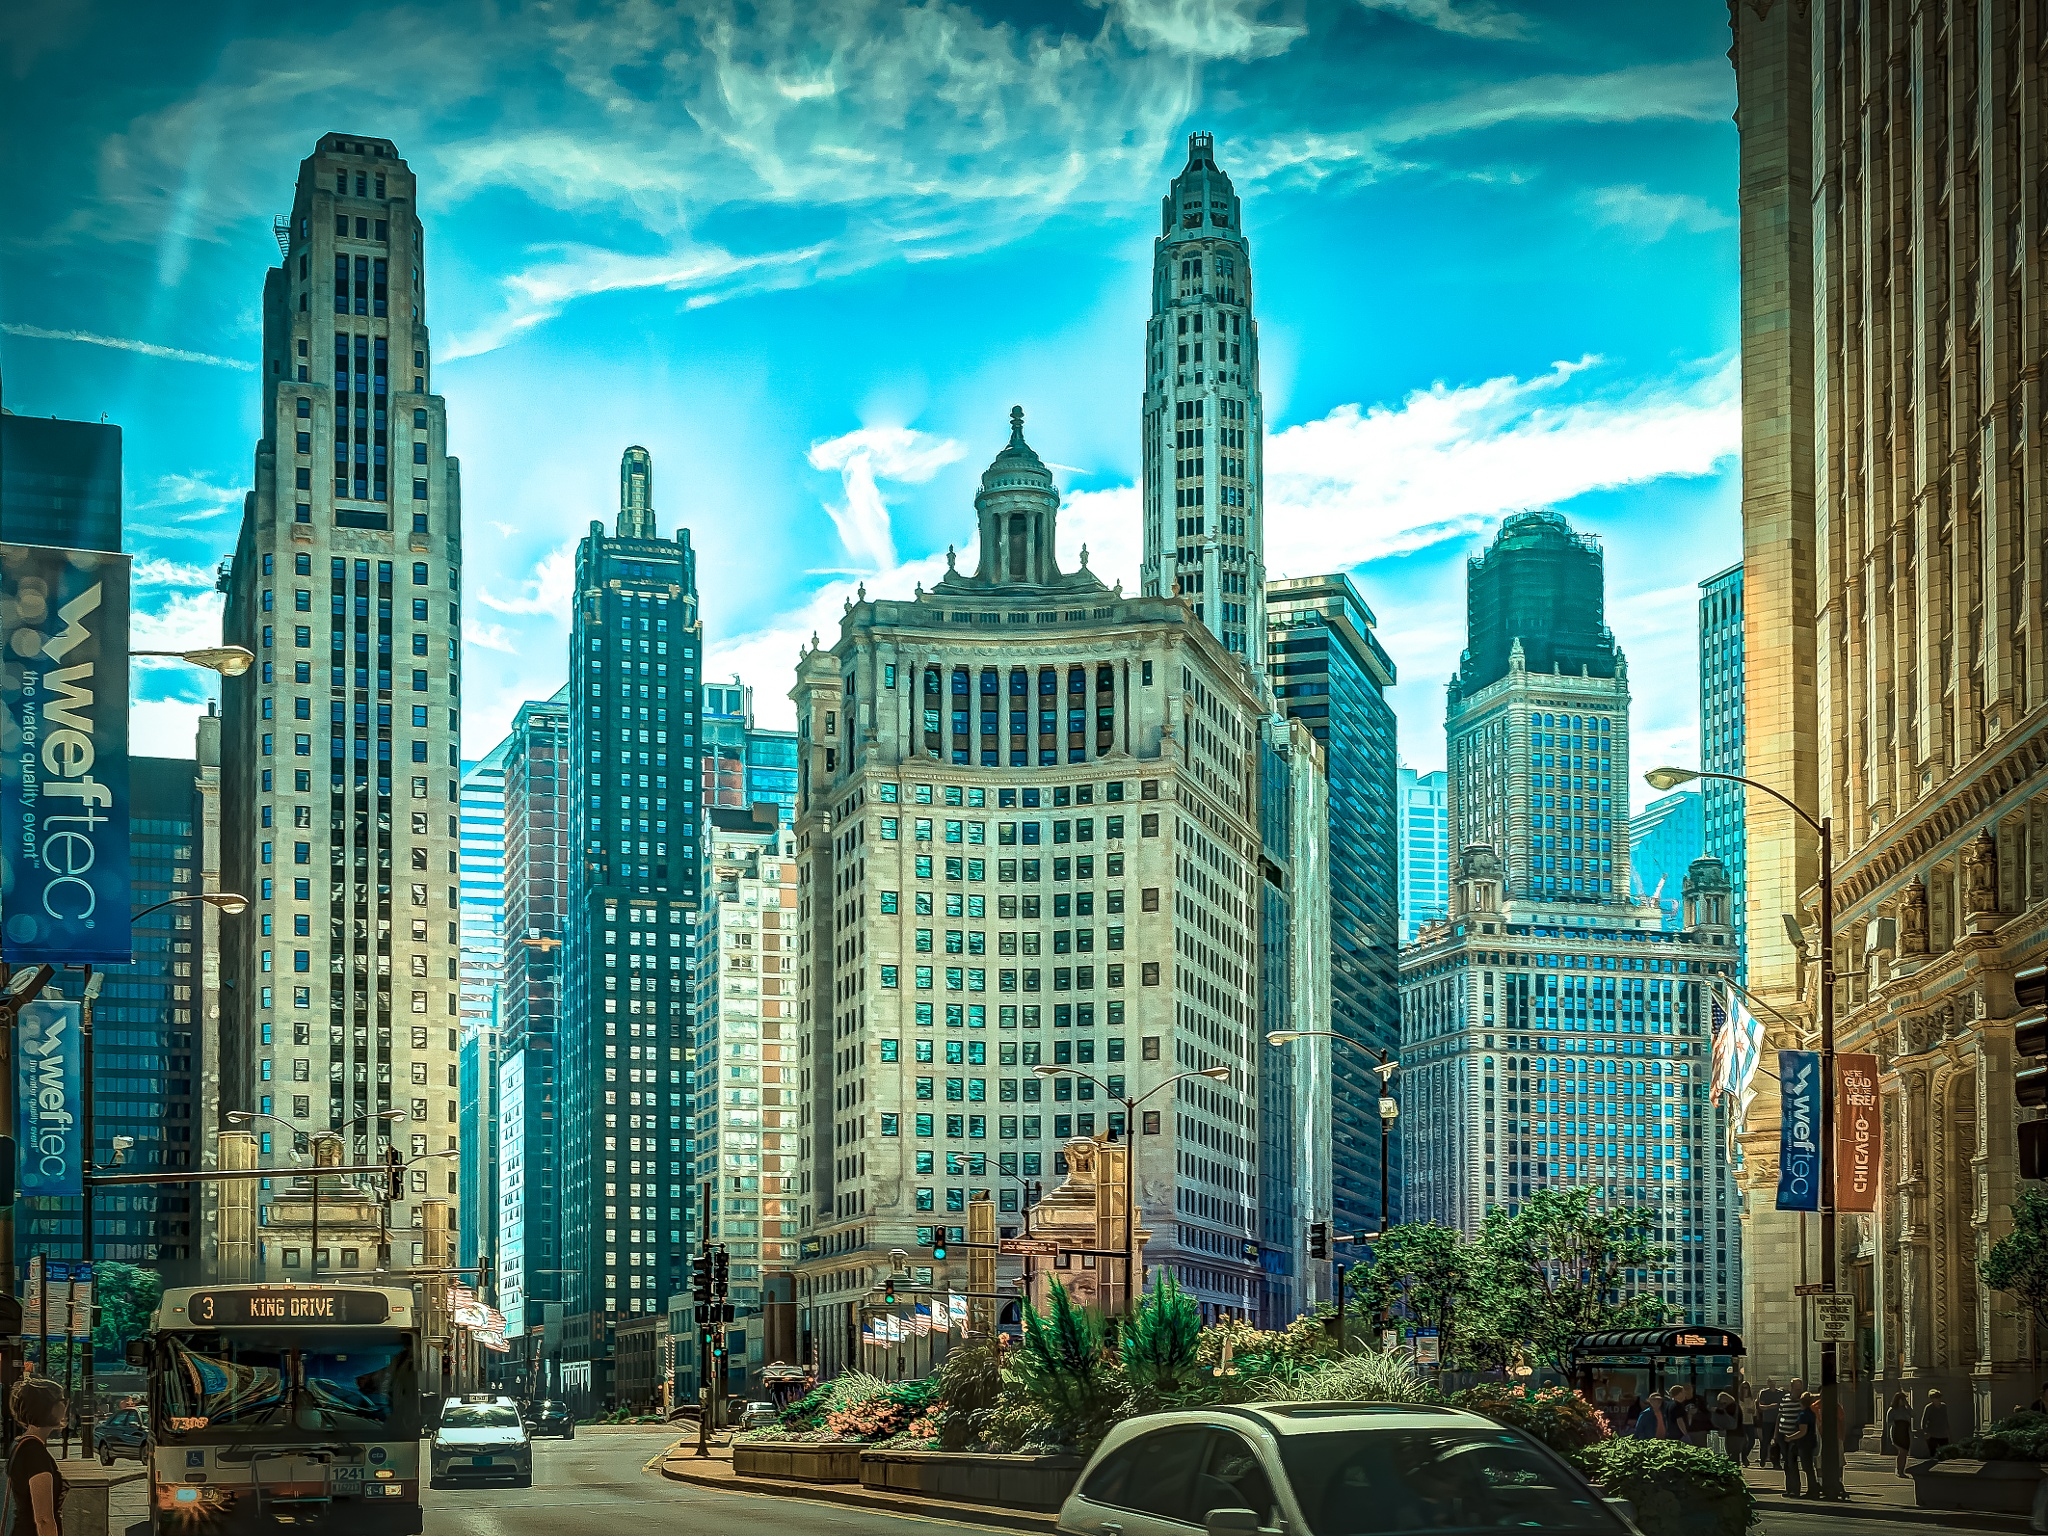 Chicago downtown by privatno1